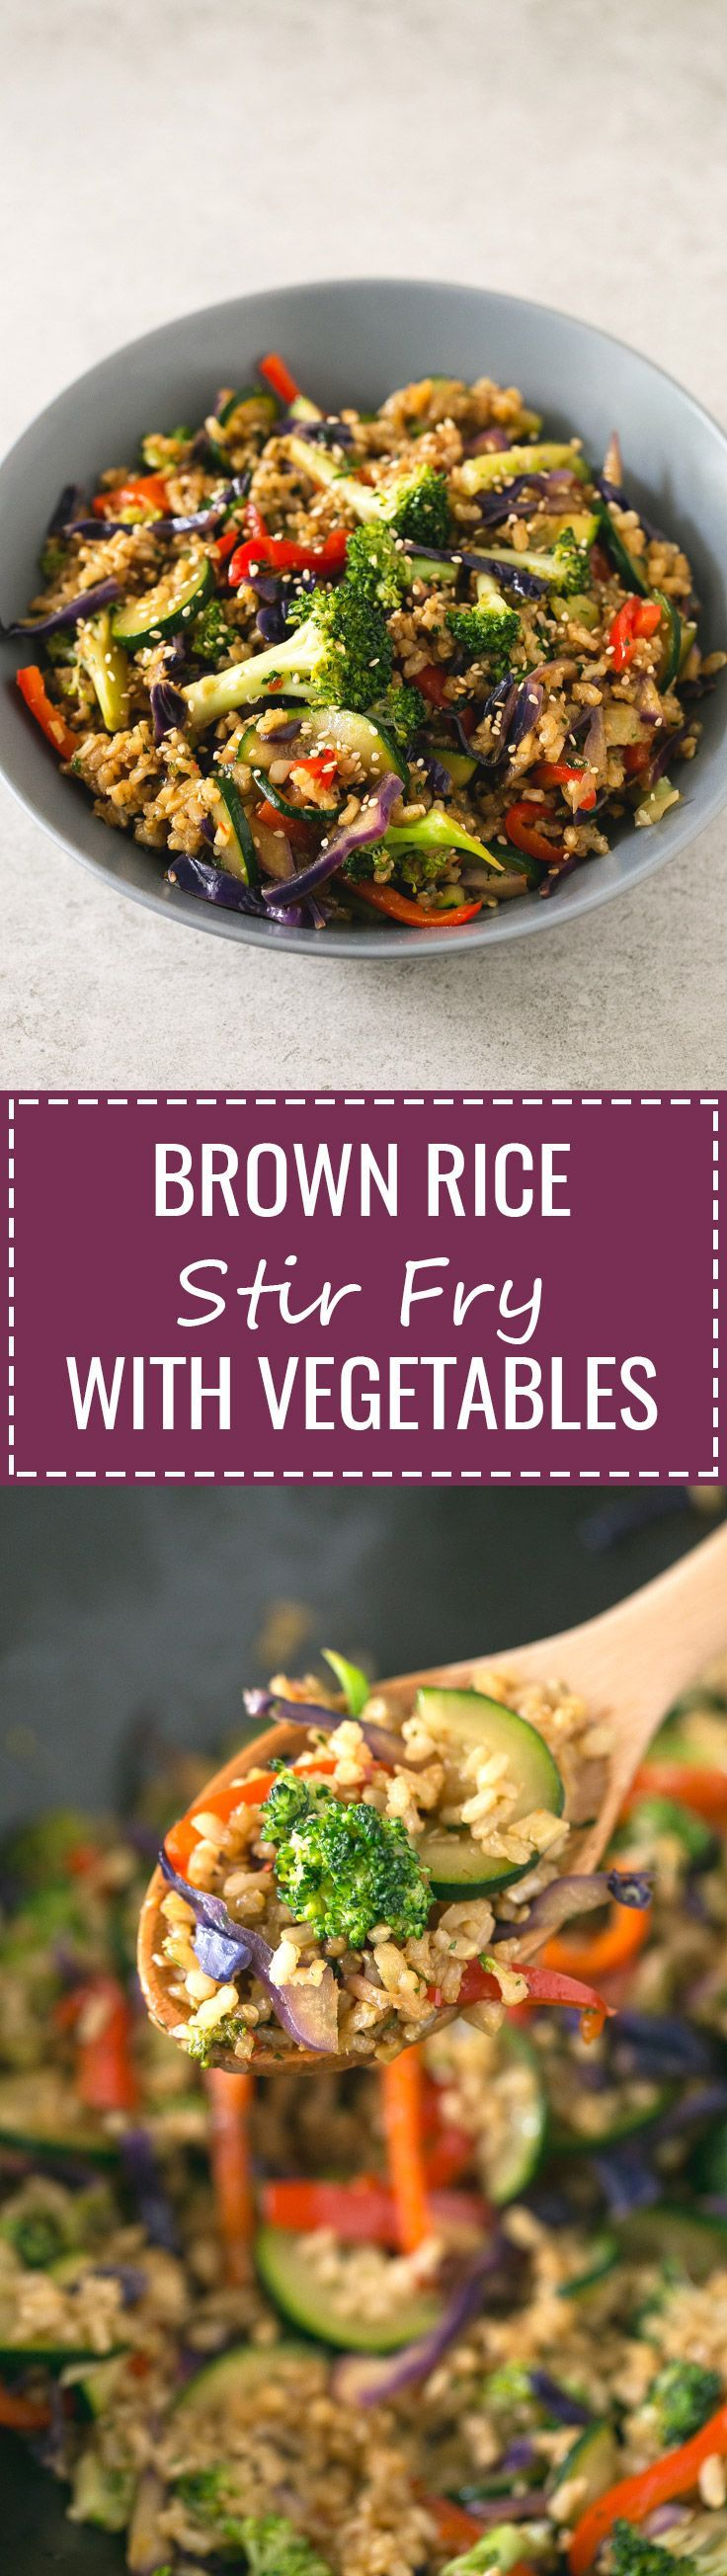 Brown rice stir fry with vegetables - I make this brown rice stir-fry with vegetables every single week. This recipe is life-changing and so simple, I'm sure you'll love it!